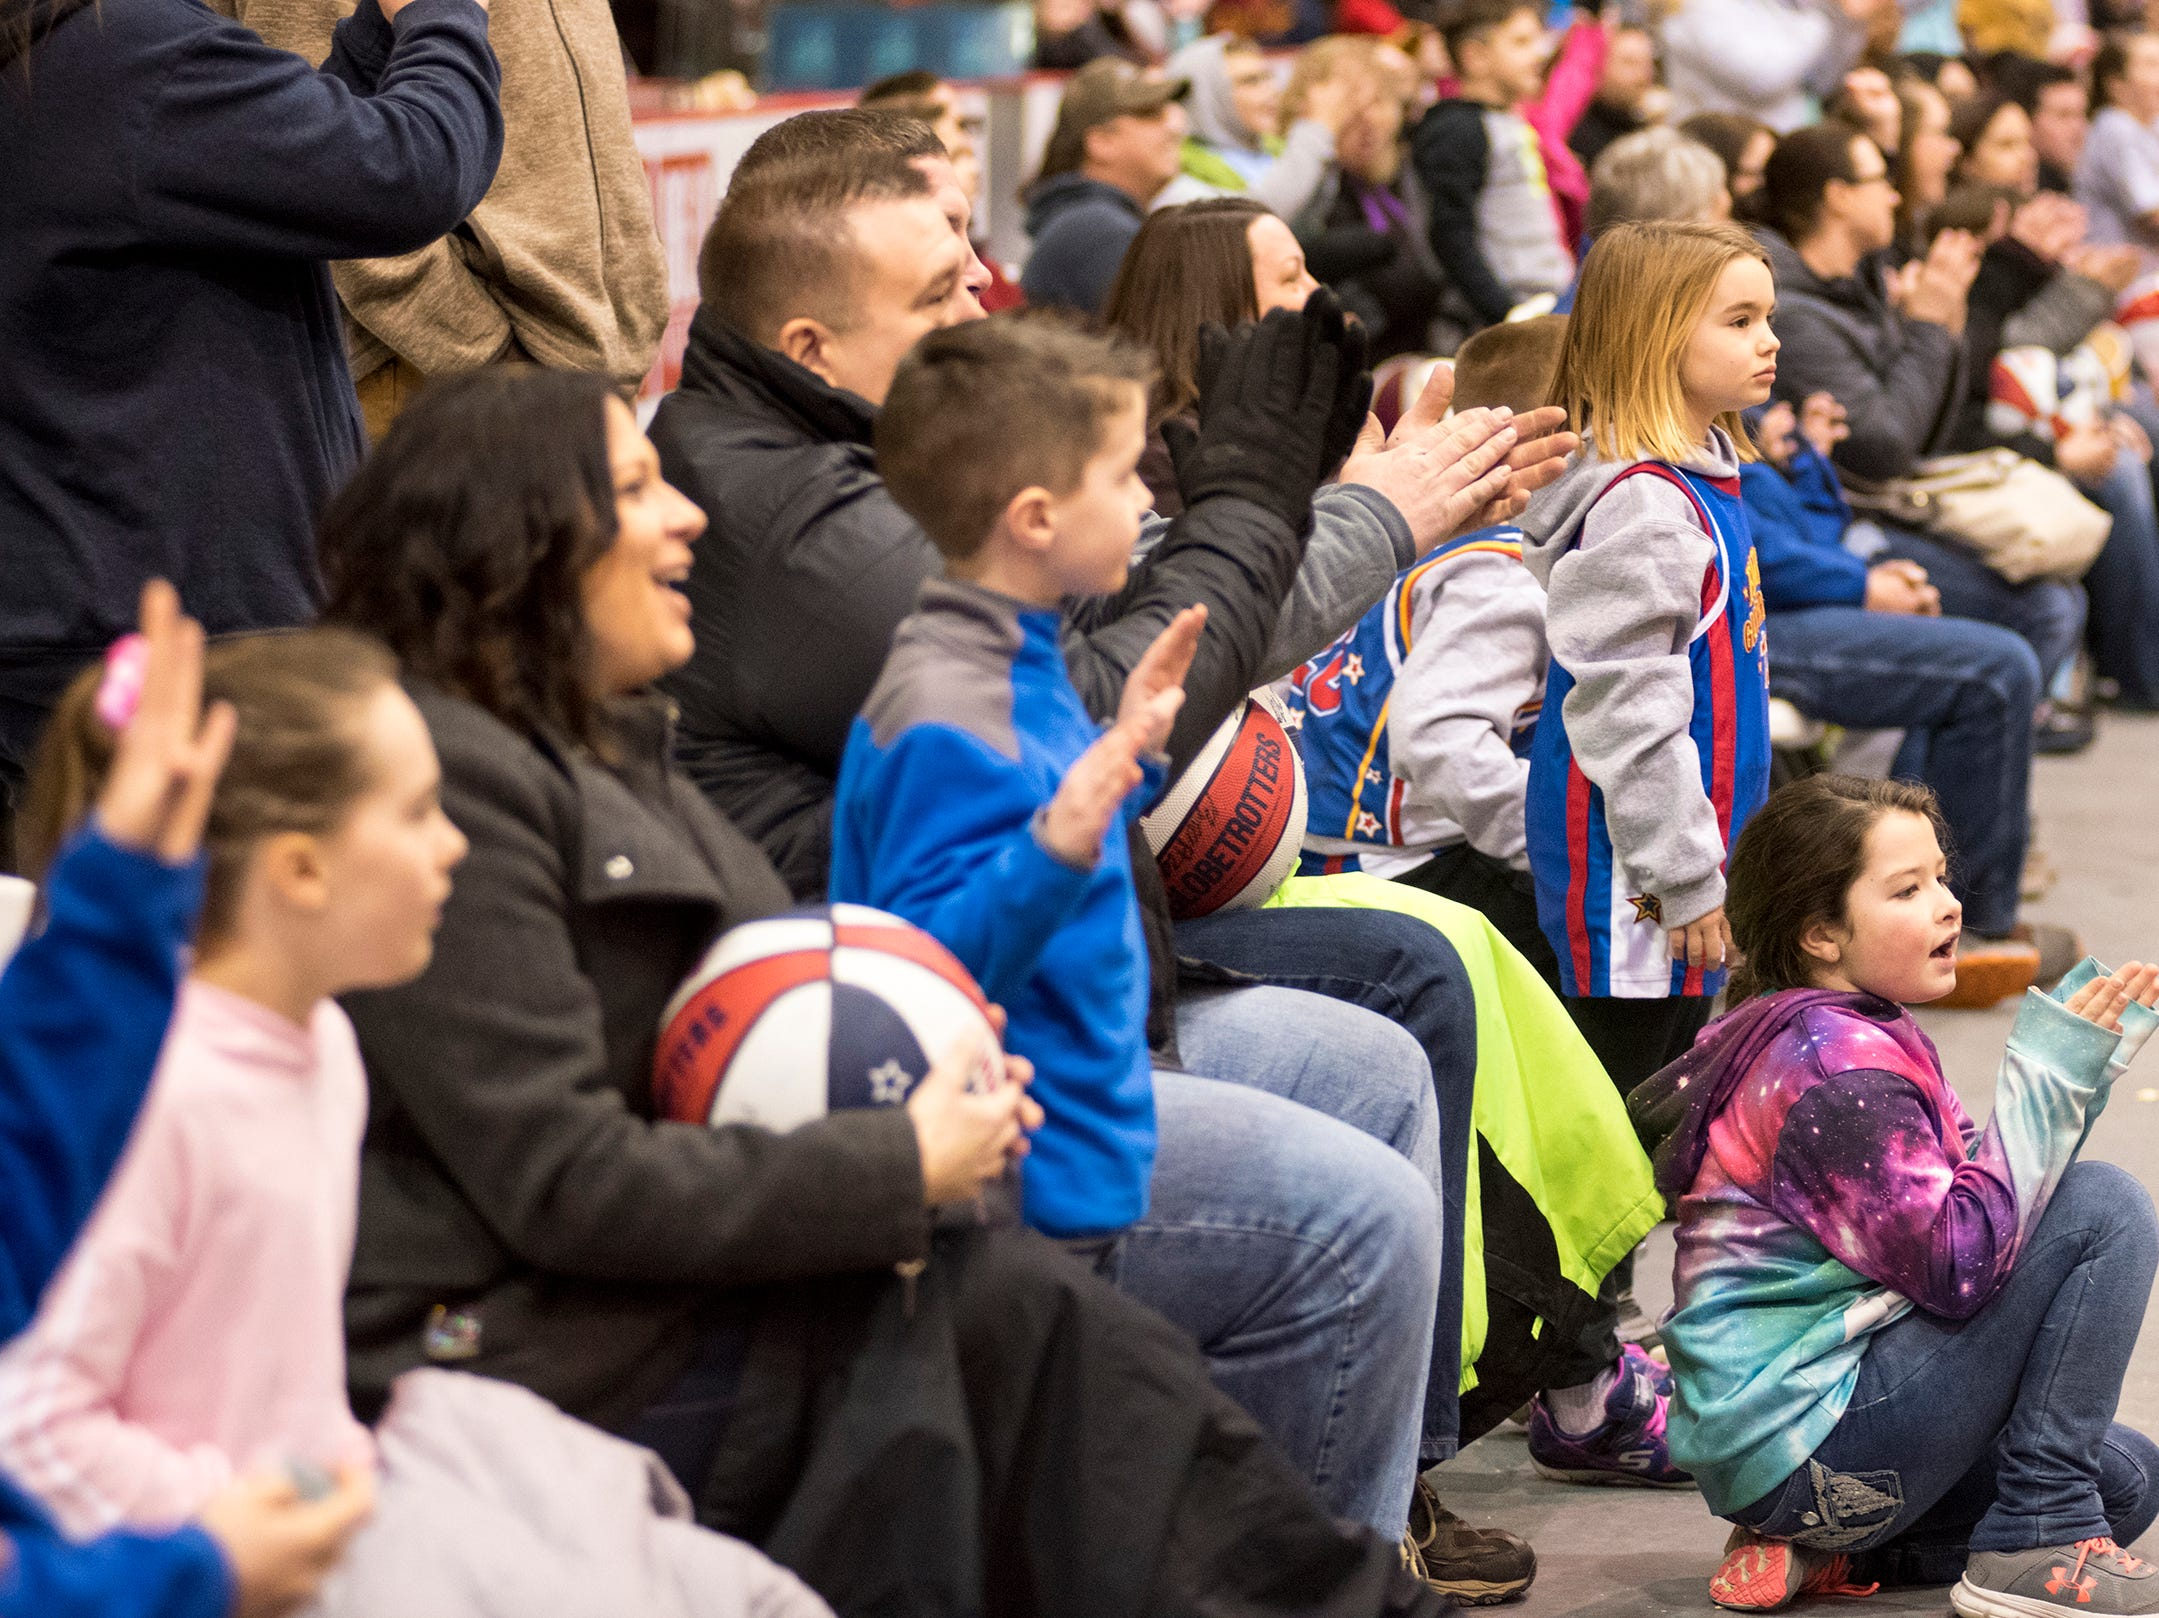 Fans cheer on the Harlem Globetrotters while they take on the Washington Generals Saturday, Feb. 2, 2019 at McMorran Arena in Port Huron.